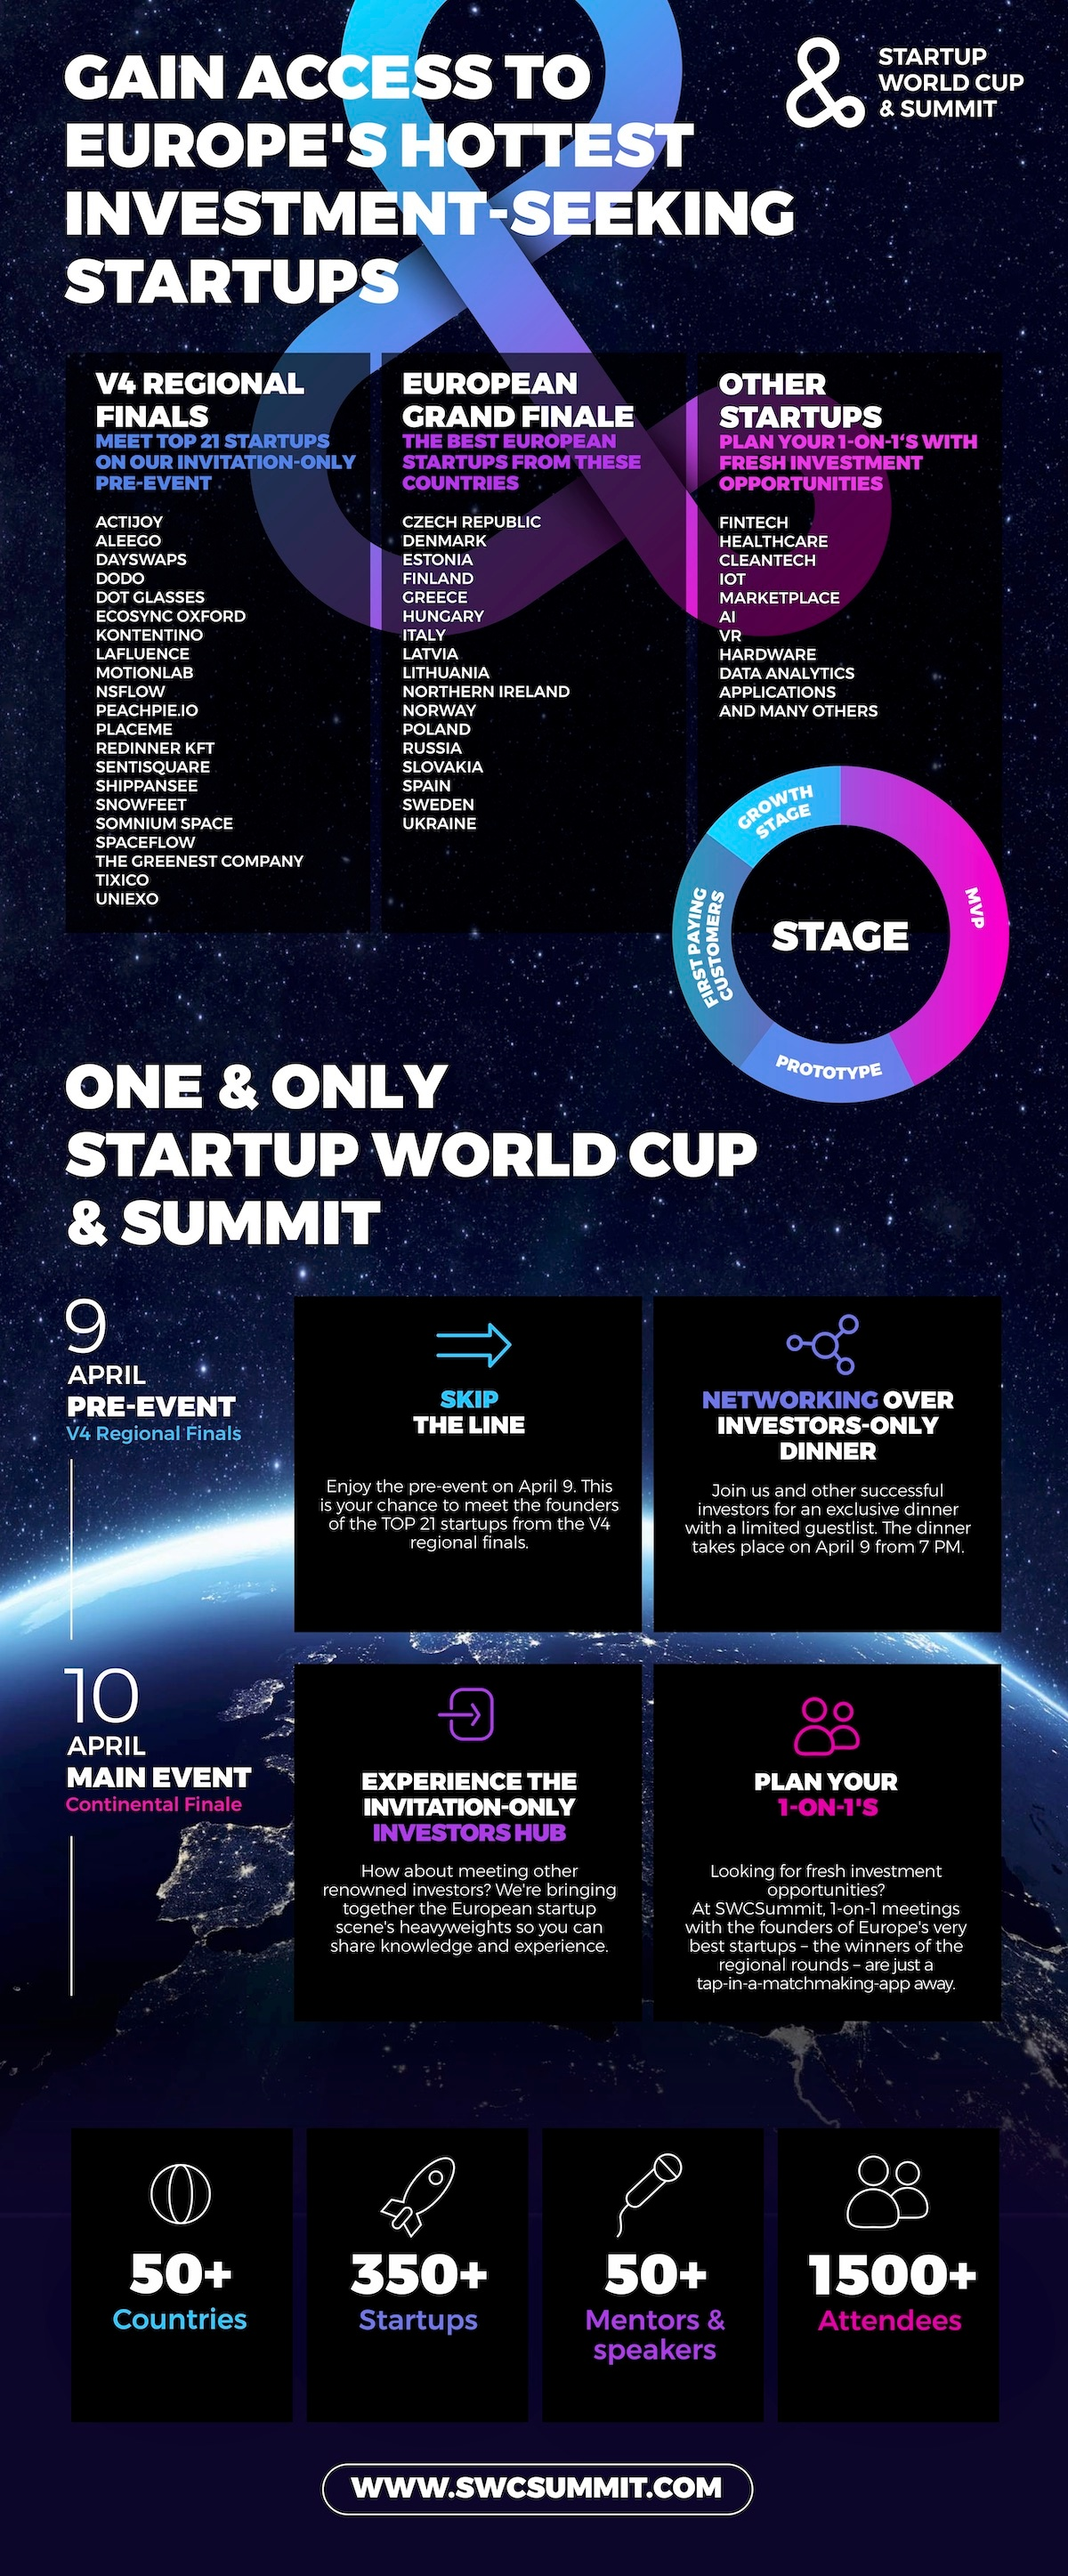 Startup World Cup & Summit